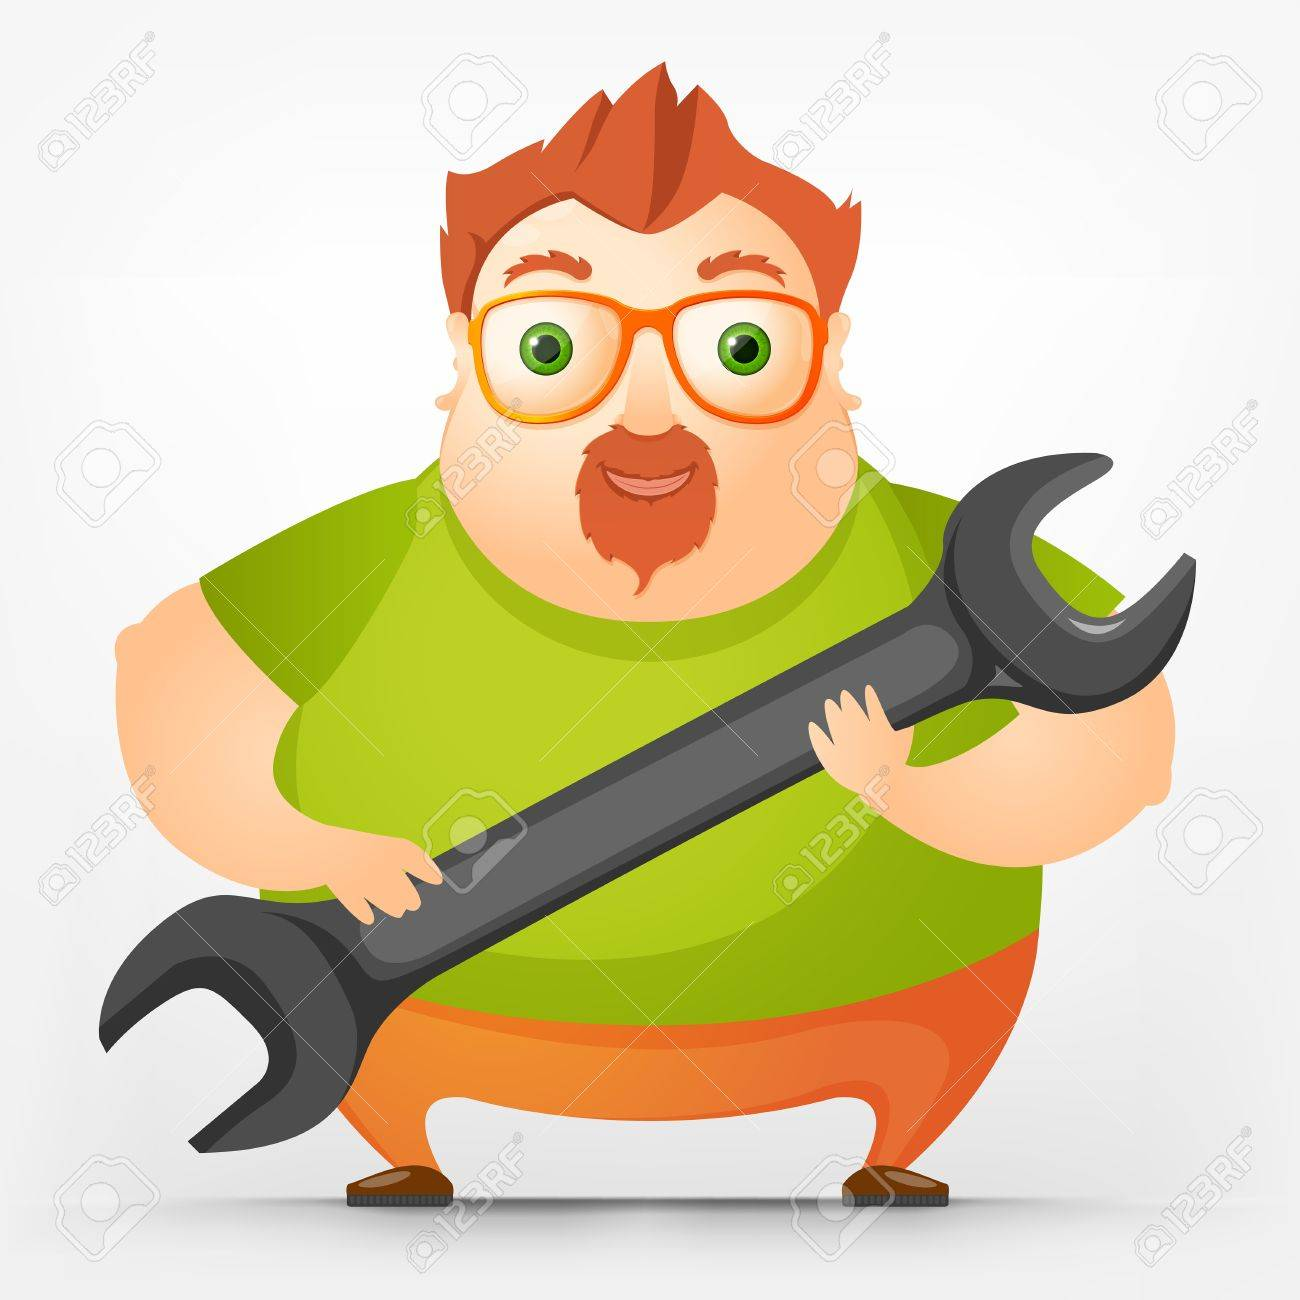 Cheerful Chubby Men Stock Vector - 17677840